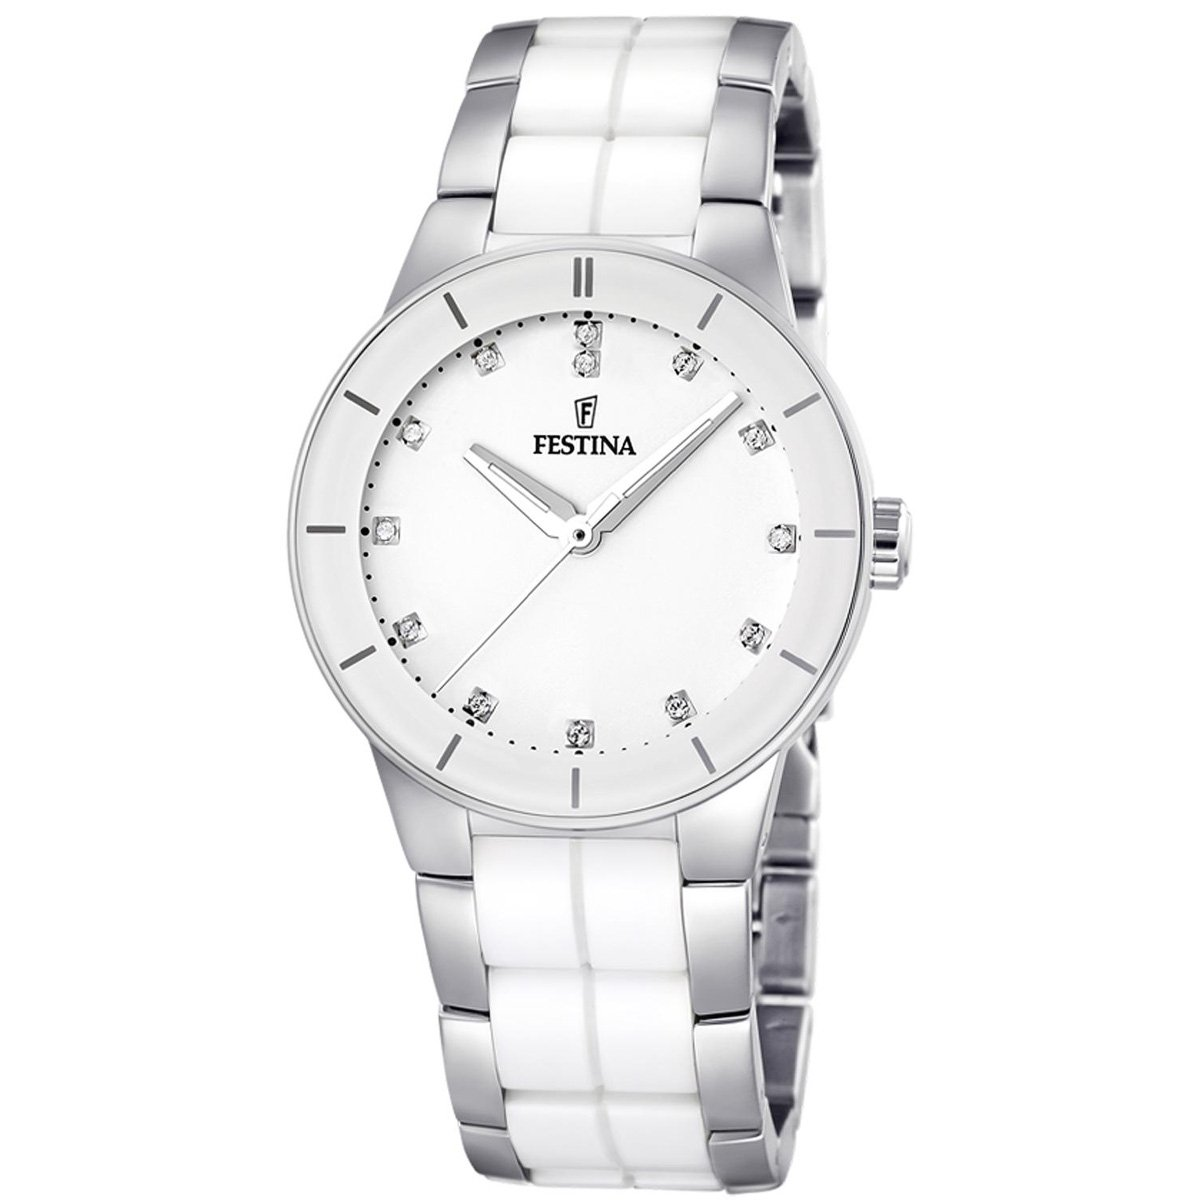 Amazon.com: Festina Womens F16531/3 White Ceramic Quartz Watch with White Dial: Festina: Watches